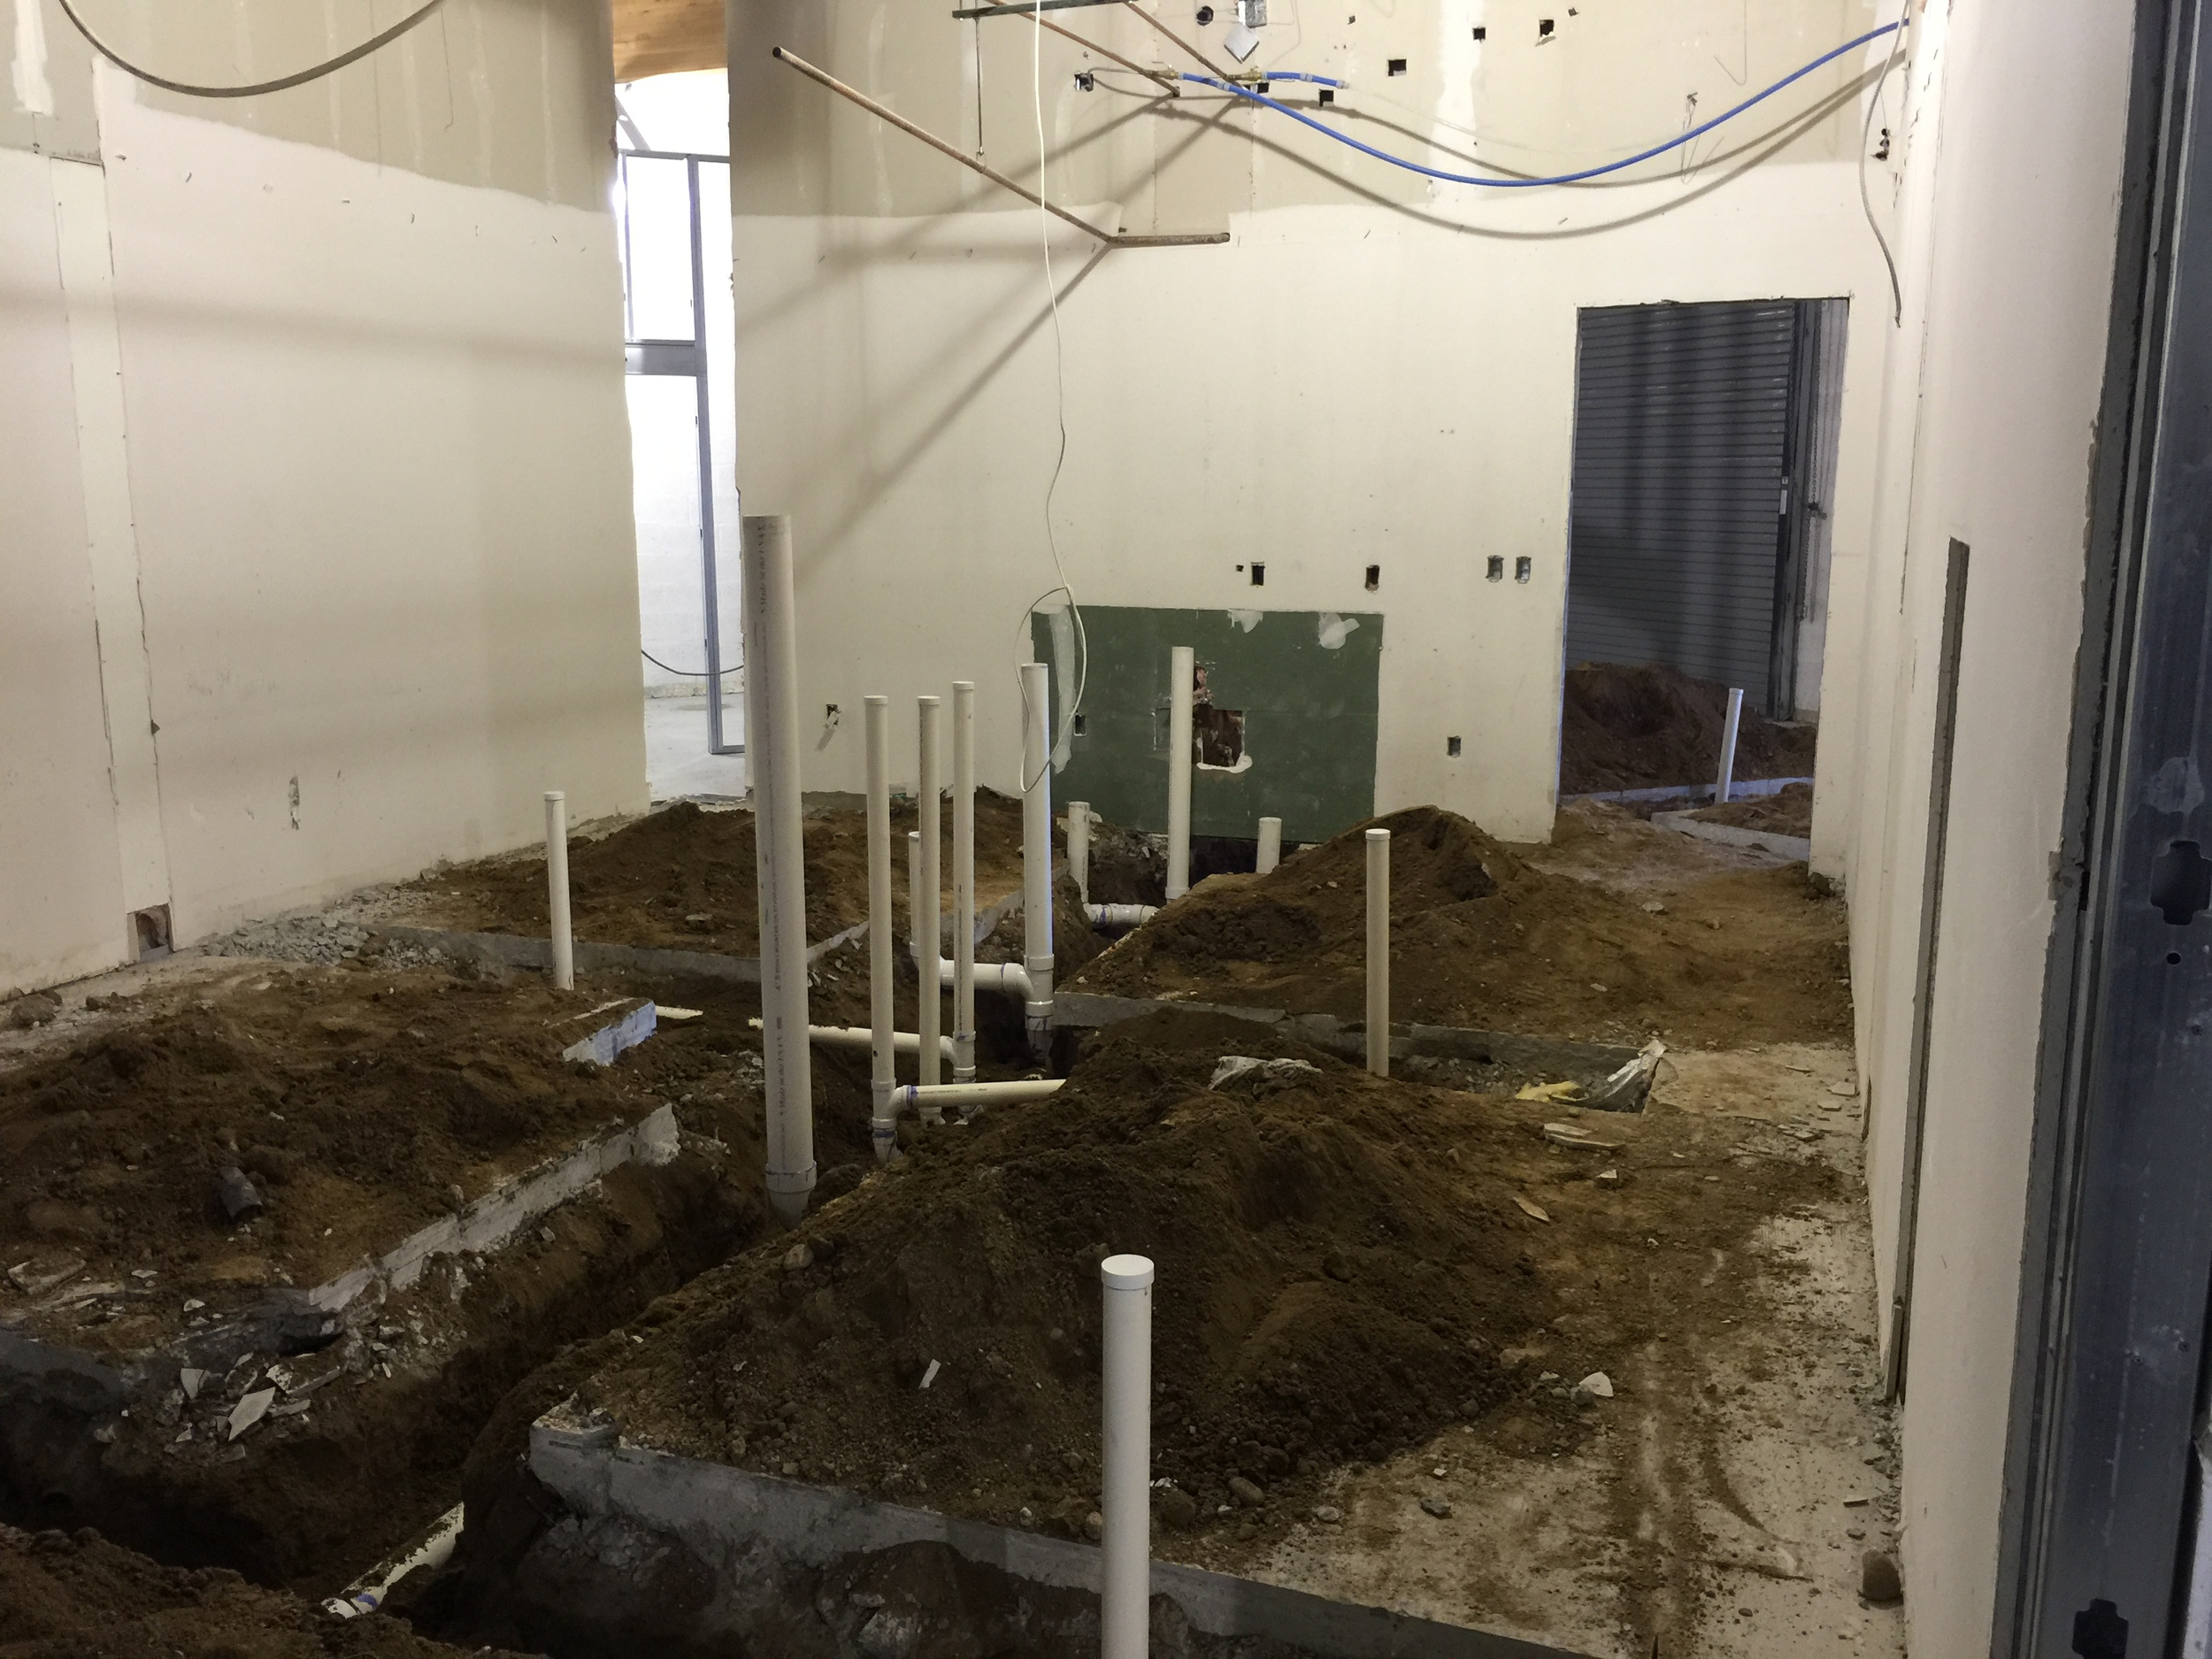 Trenching for the future bathroom plumbing. A thing of beauty.